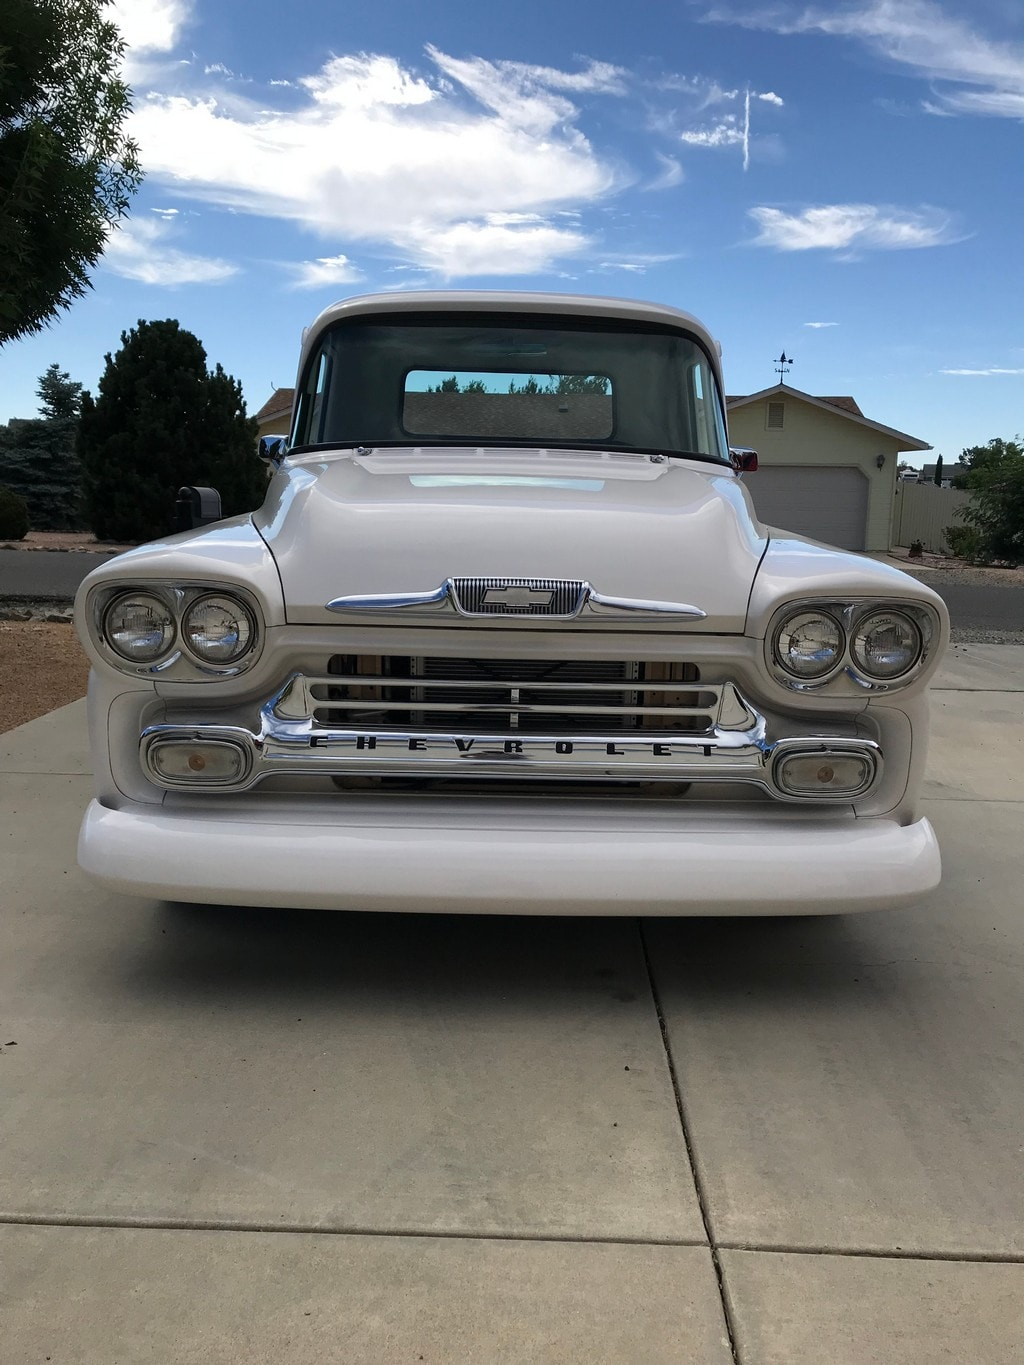 James Alexander - Prescott Valley, AZ - 1958 Chevrolet Apache